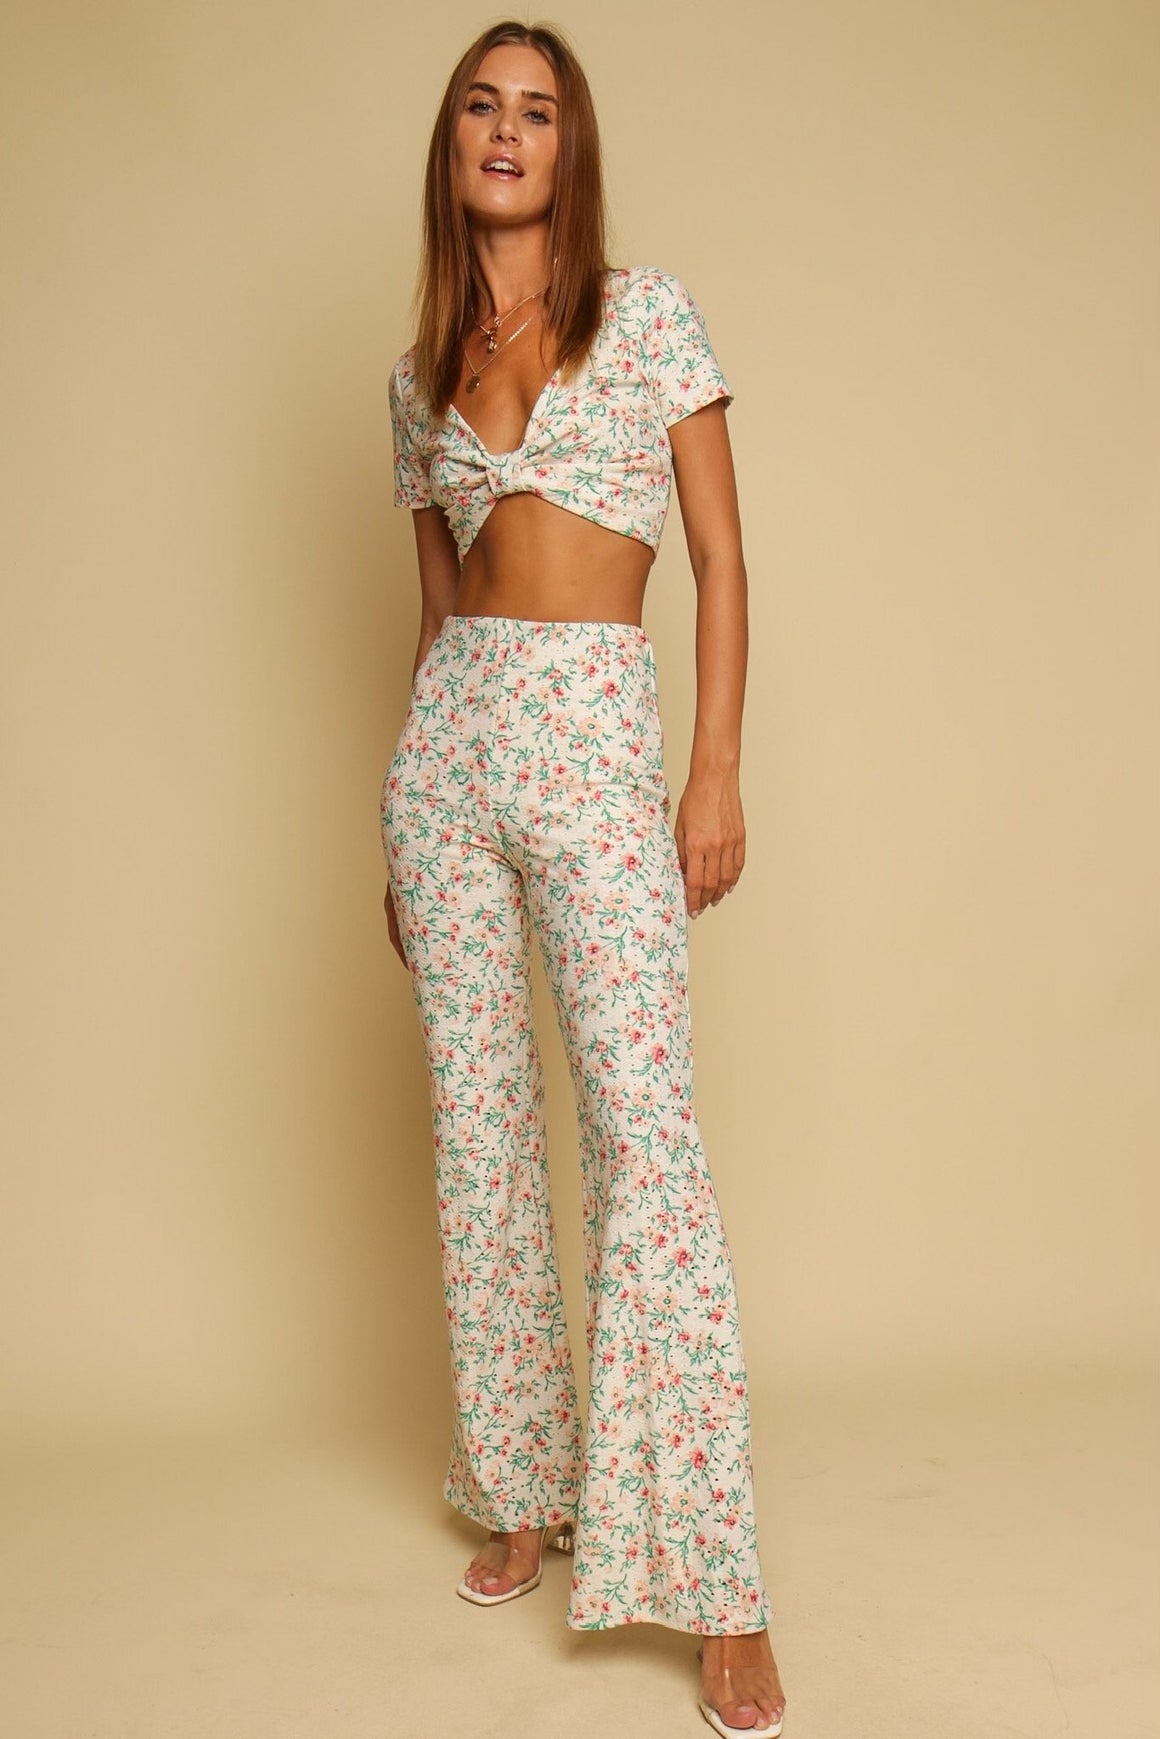 Amalfi Coast Floral Top & Pant Co-ord Set White